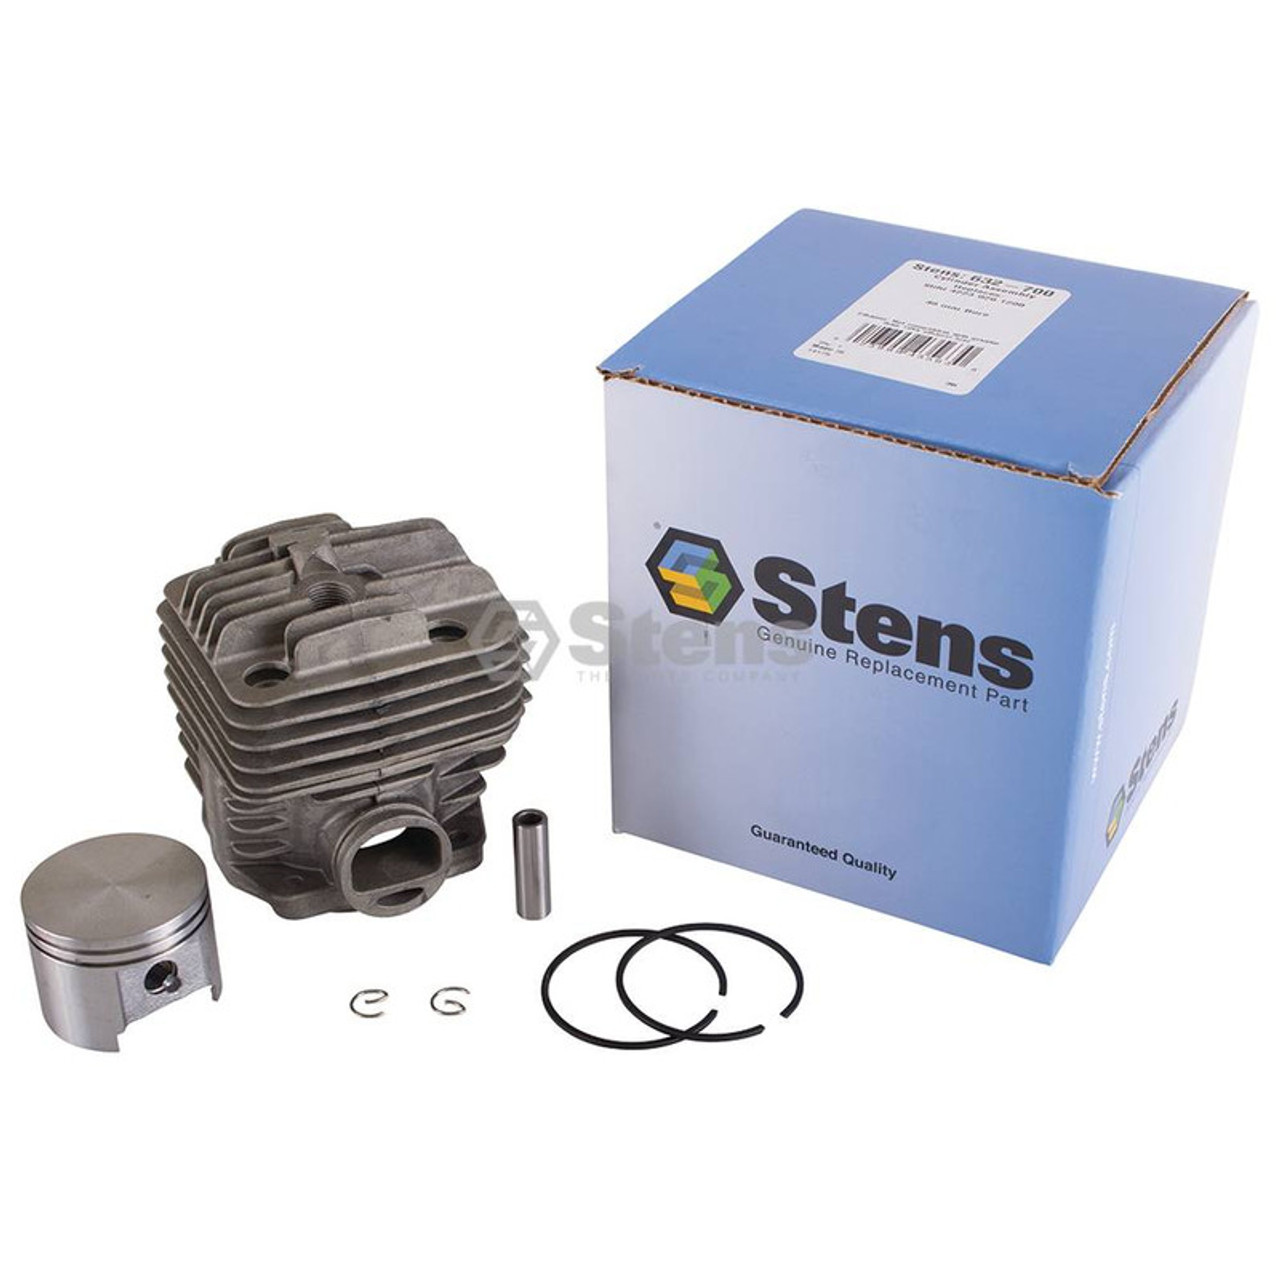 Piston Cylinder with Rings for Stihl TS400 Cutquik saw 42230201200, 4223 020 1200 Rebuild Kit